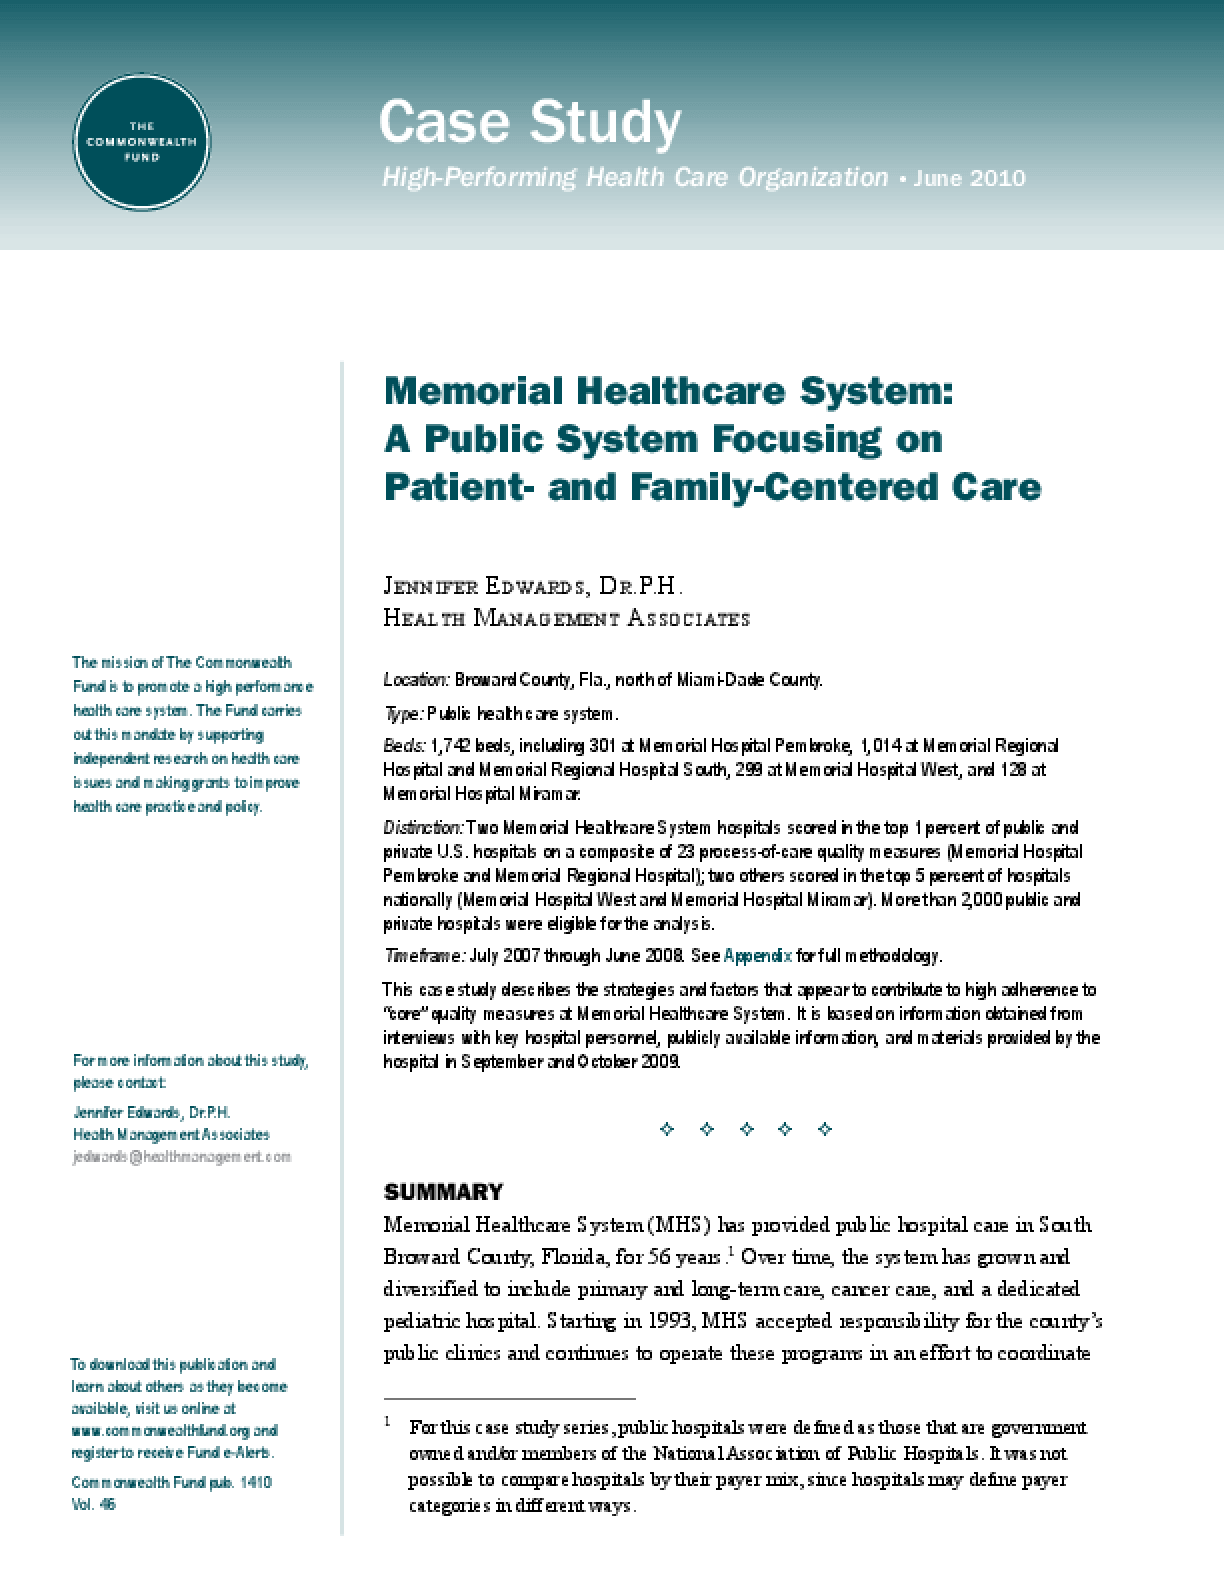 Memorial Healthcare System: A Public System Focusing on Patient- and Family-Centered Care